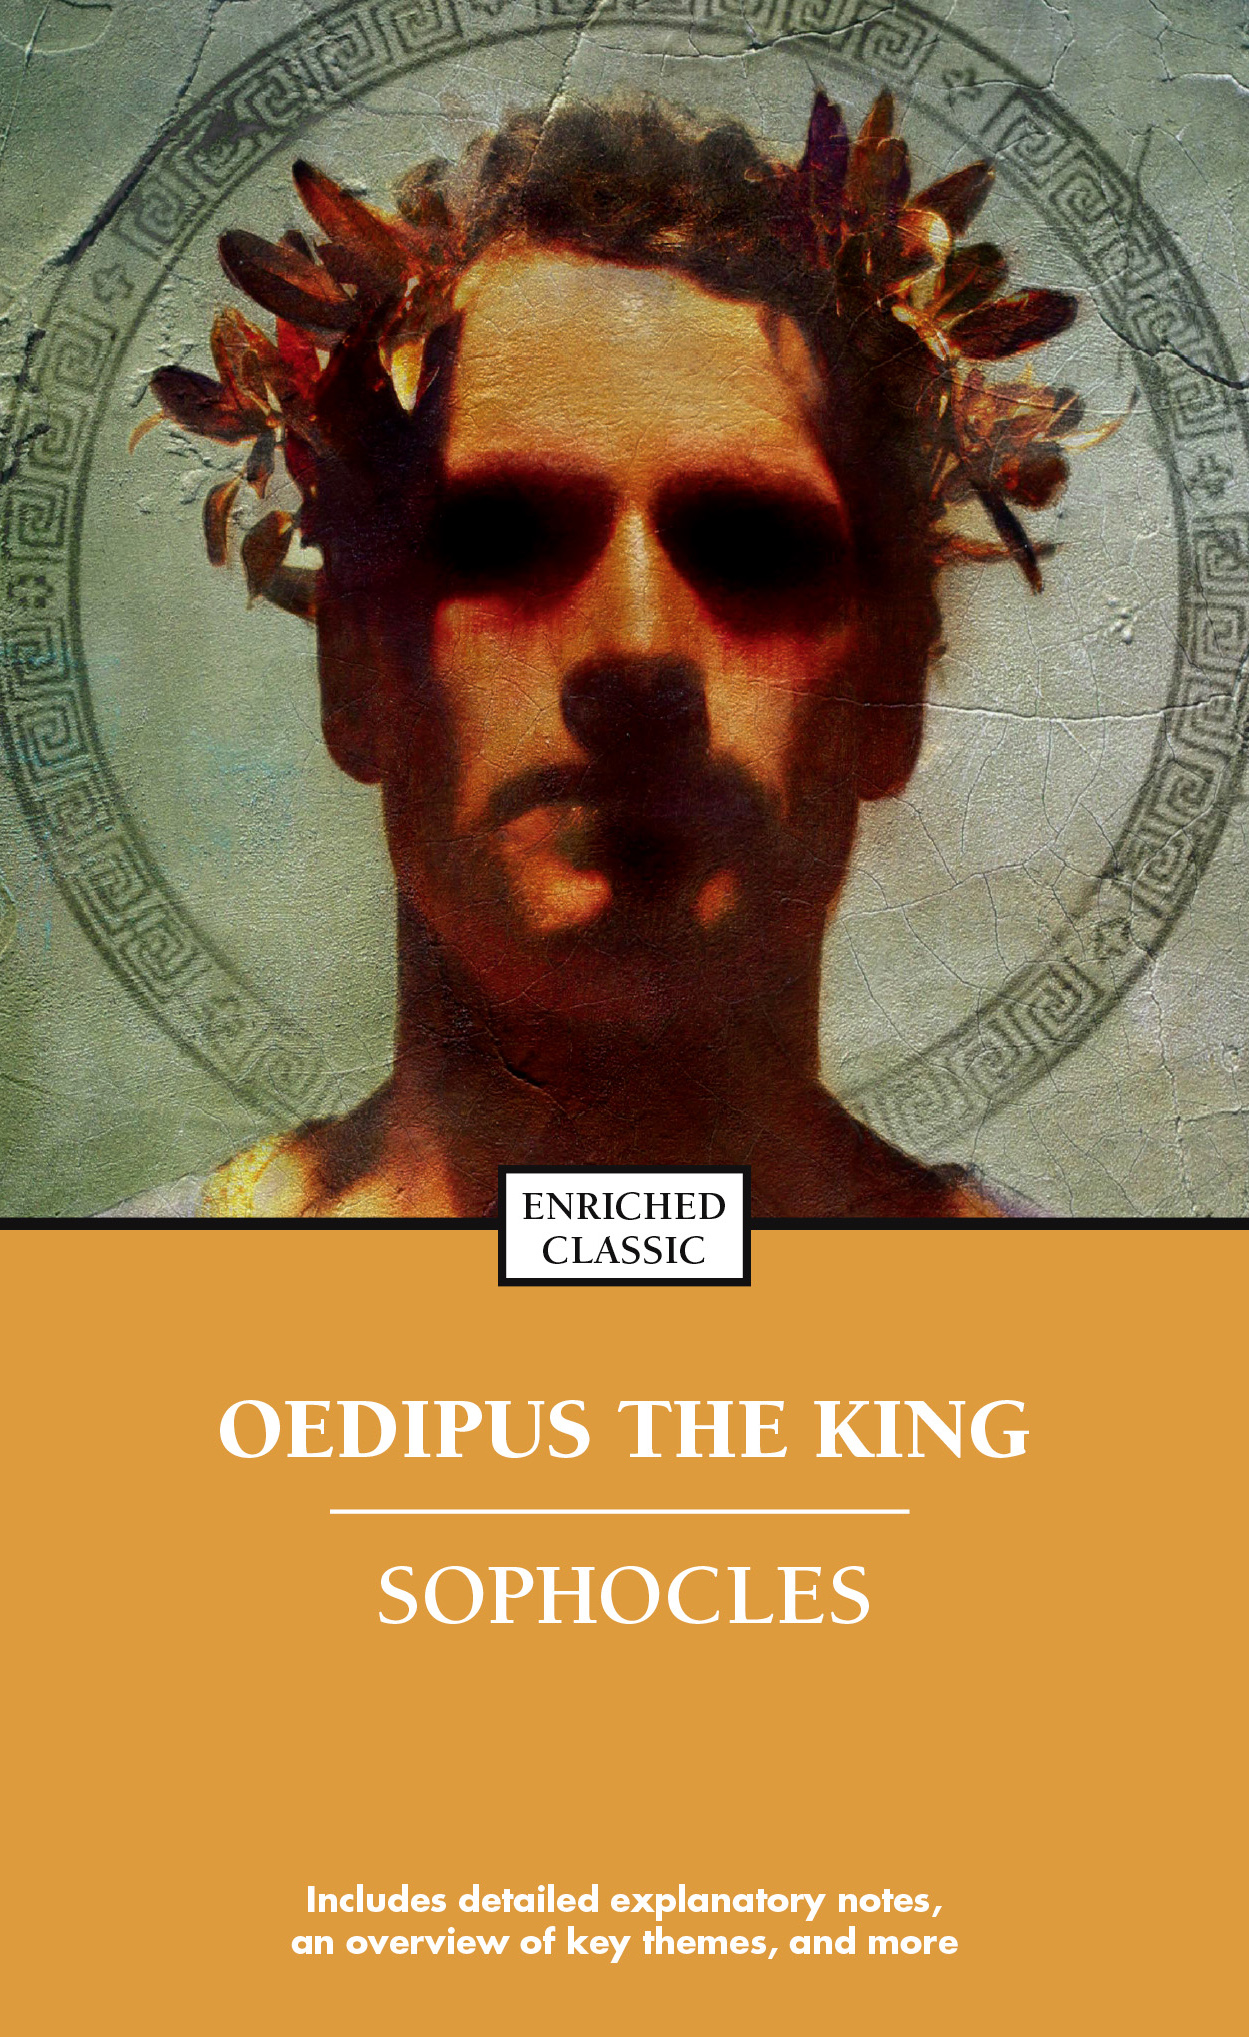 a literary analysis of the imagery of blindness in oedipus rex by sophocles Essay good a literary analysis of the imagery of blindness in oedipus rex by sophocles of the imagery of blindness in oedipus rex by sophocles.